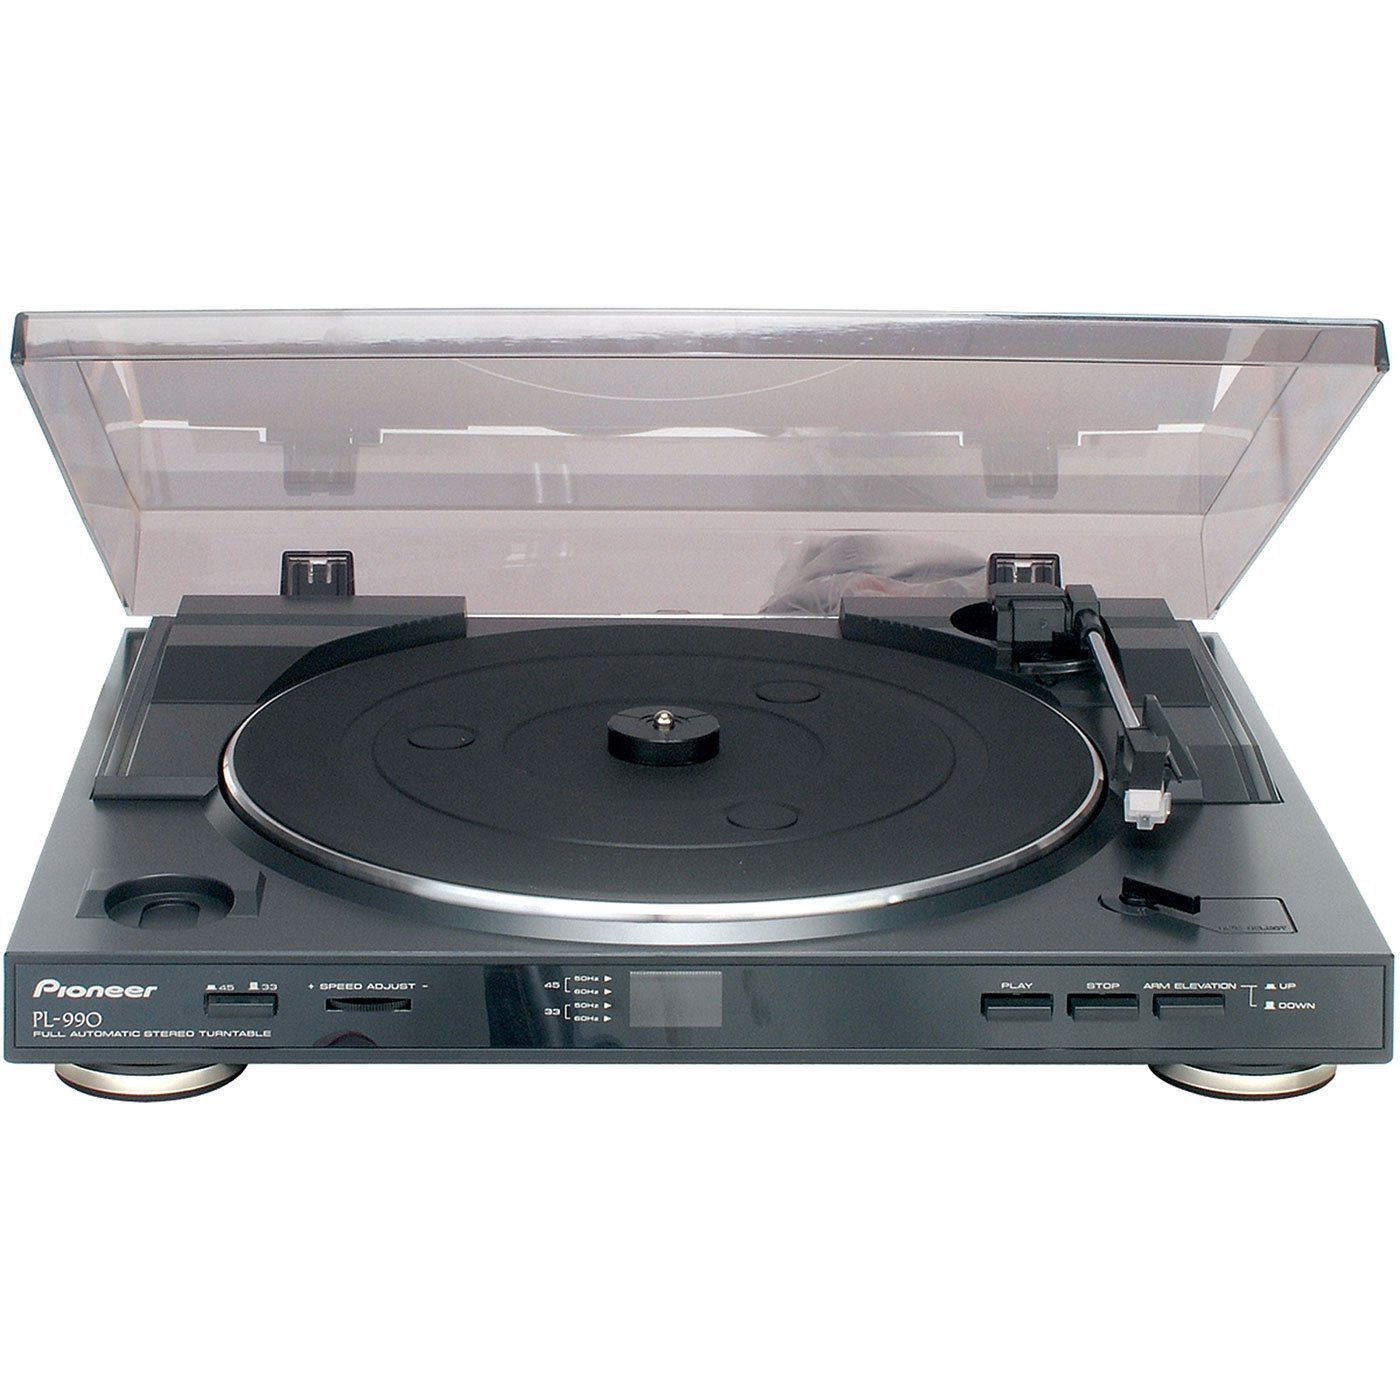 Pioneer PL-990 Automatic Stereo Turntable Best turntable under $200